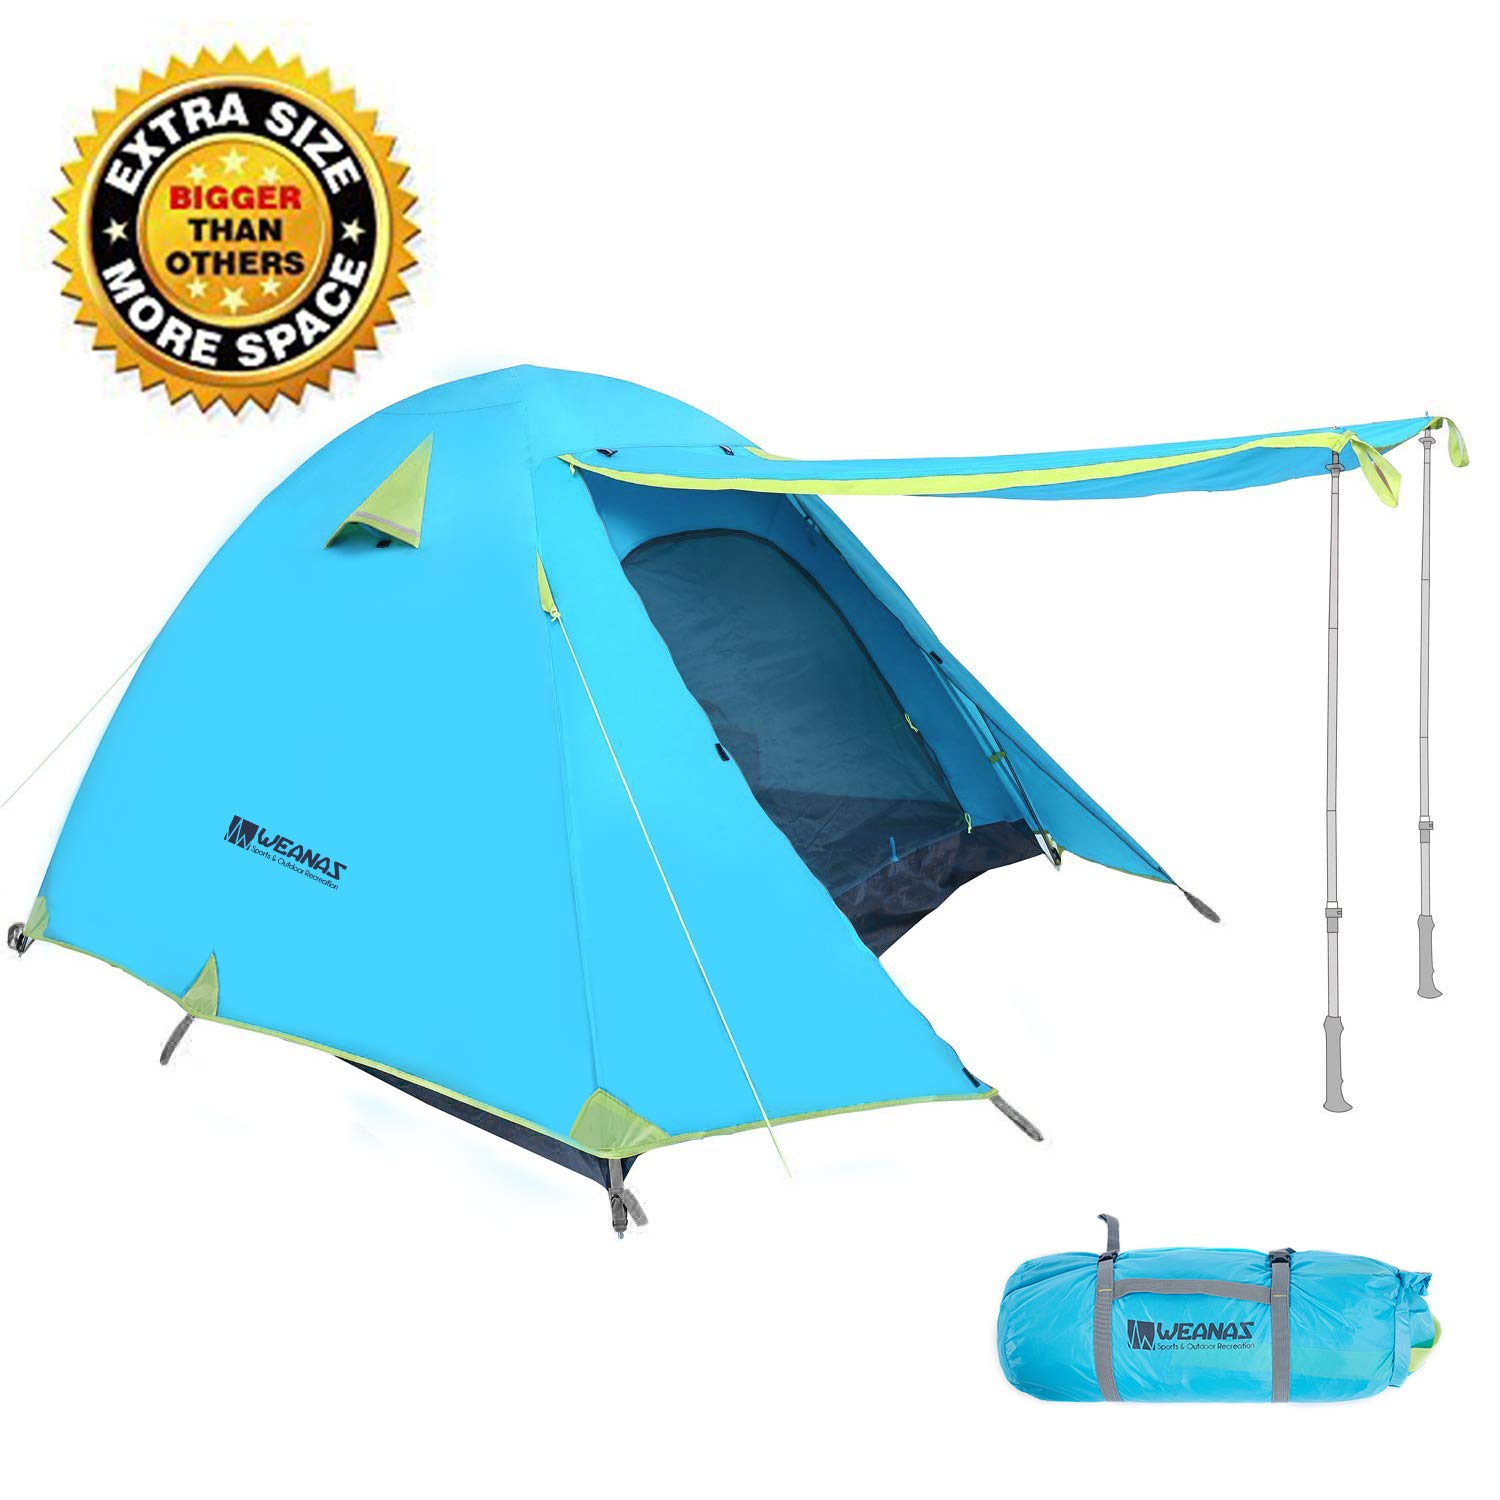 Weanas Professional Backpacking Tent 2 3 4 Person 3 Season Weatherproof Double Layer Large Space Aluminum Rod for Outdoor Family Camping Hunting Hiking Adventure Travel (Extra Size Azure, 1-2 Person) by Weanas